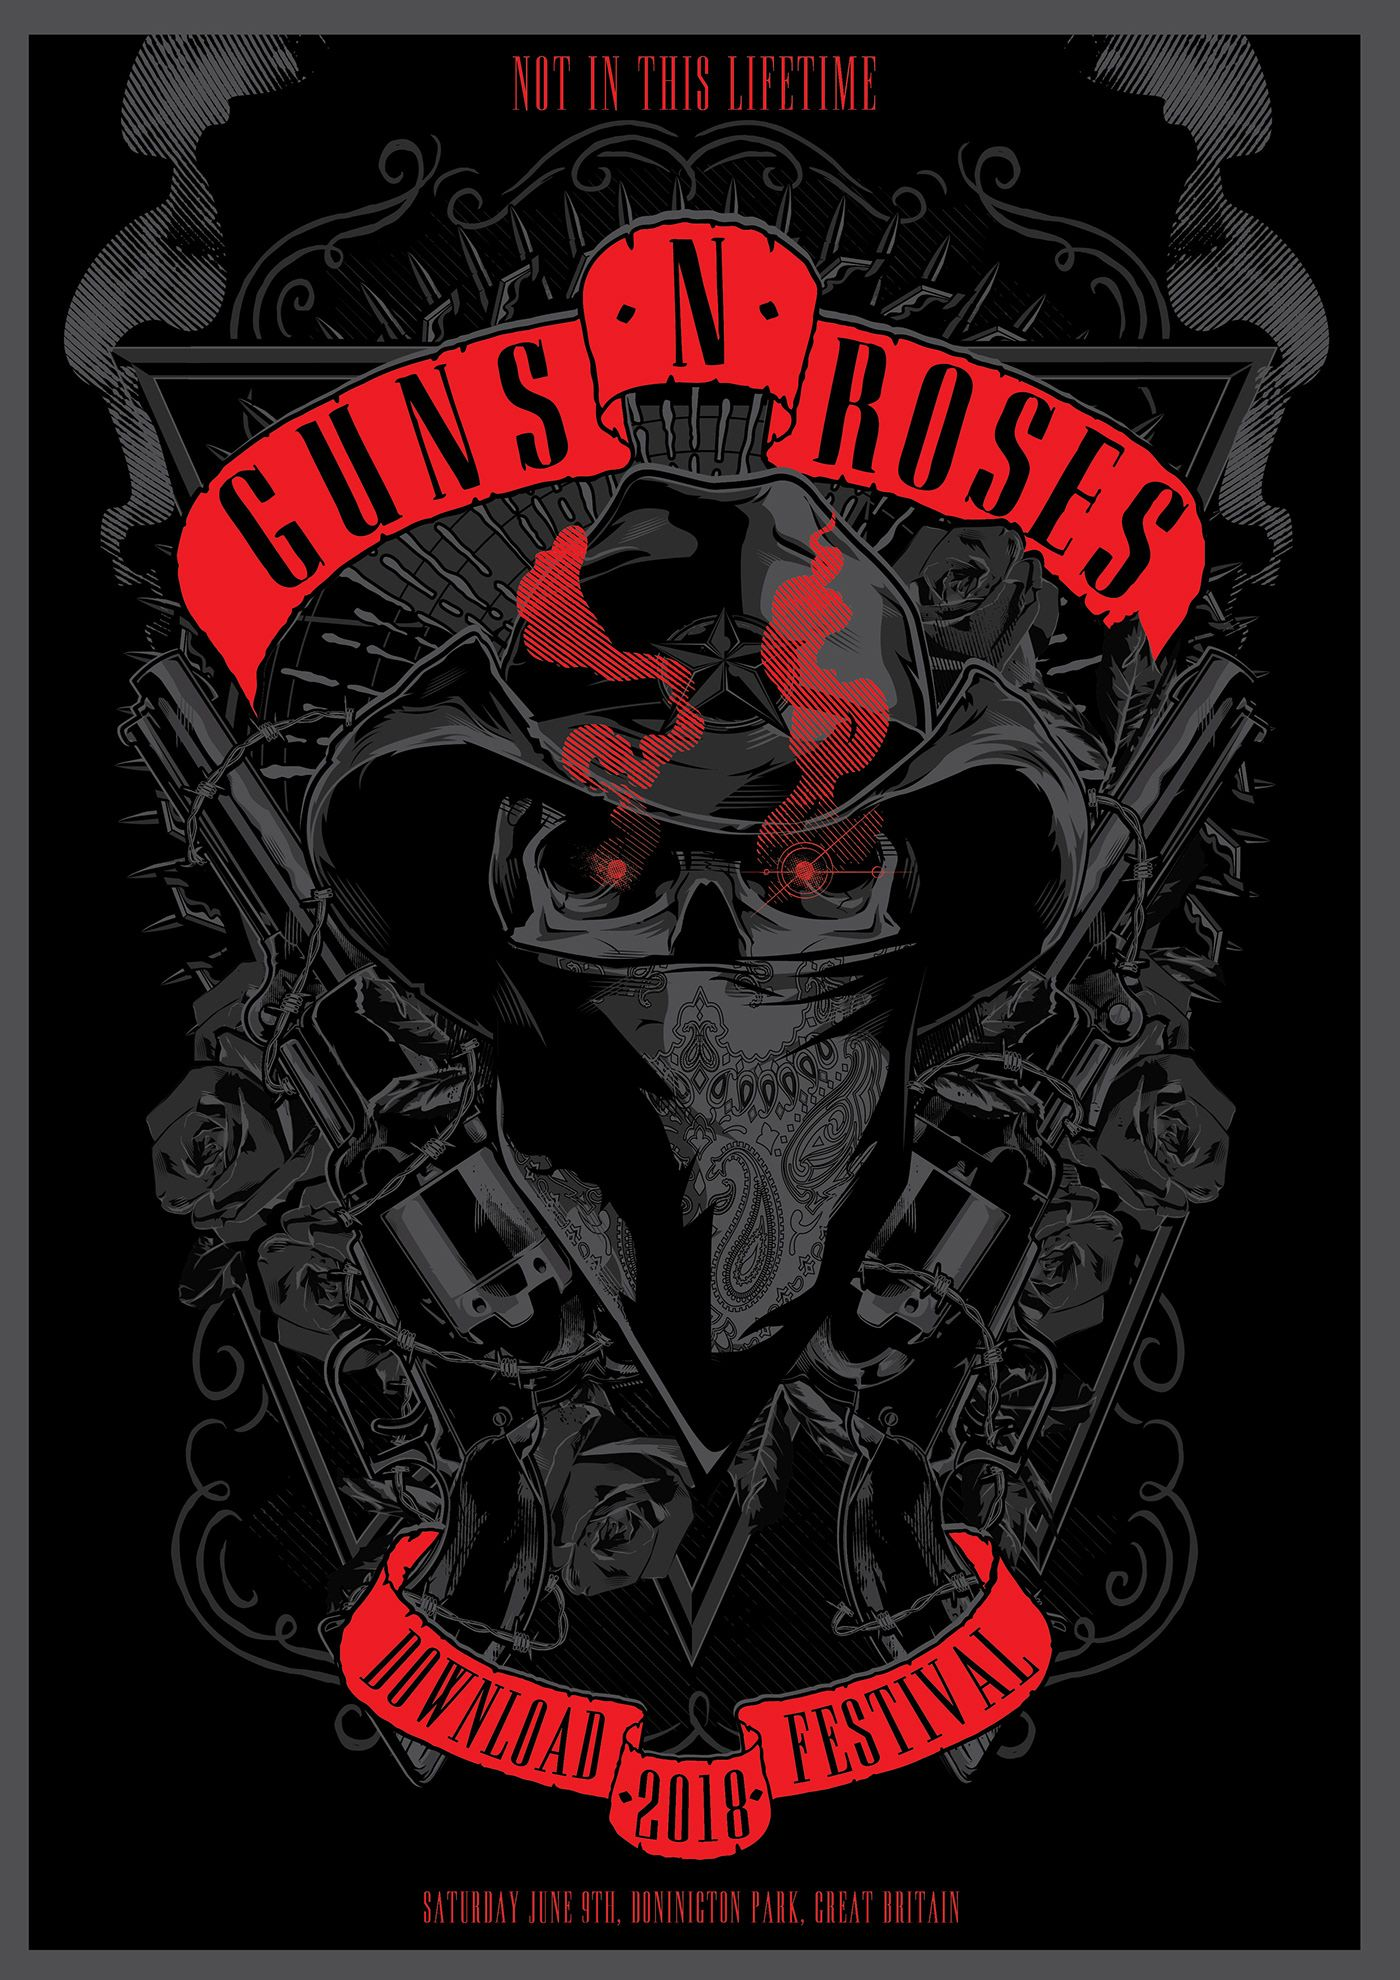 GUNS N ROSES TRIBUTE POSTER On Behance